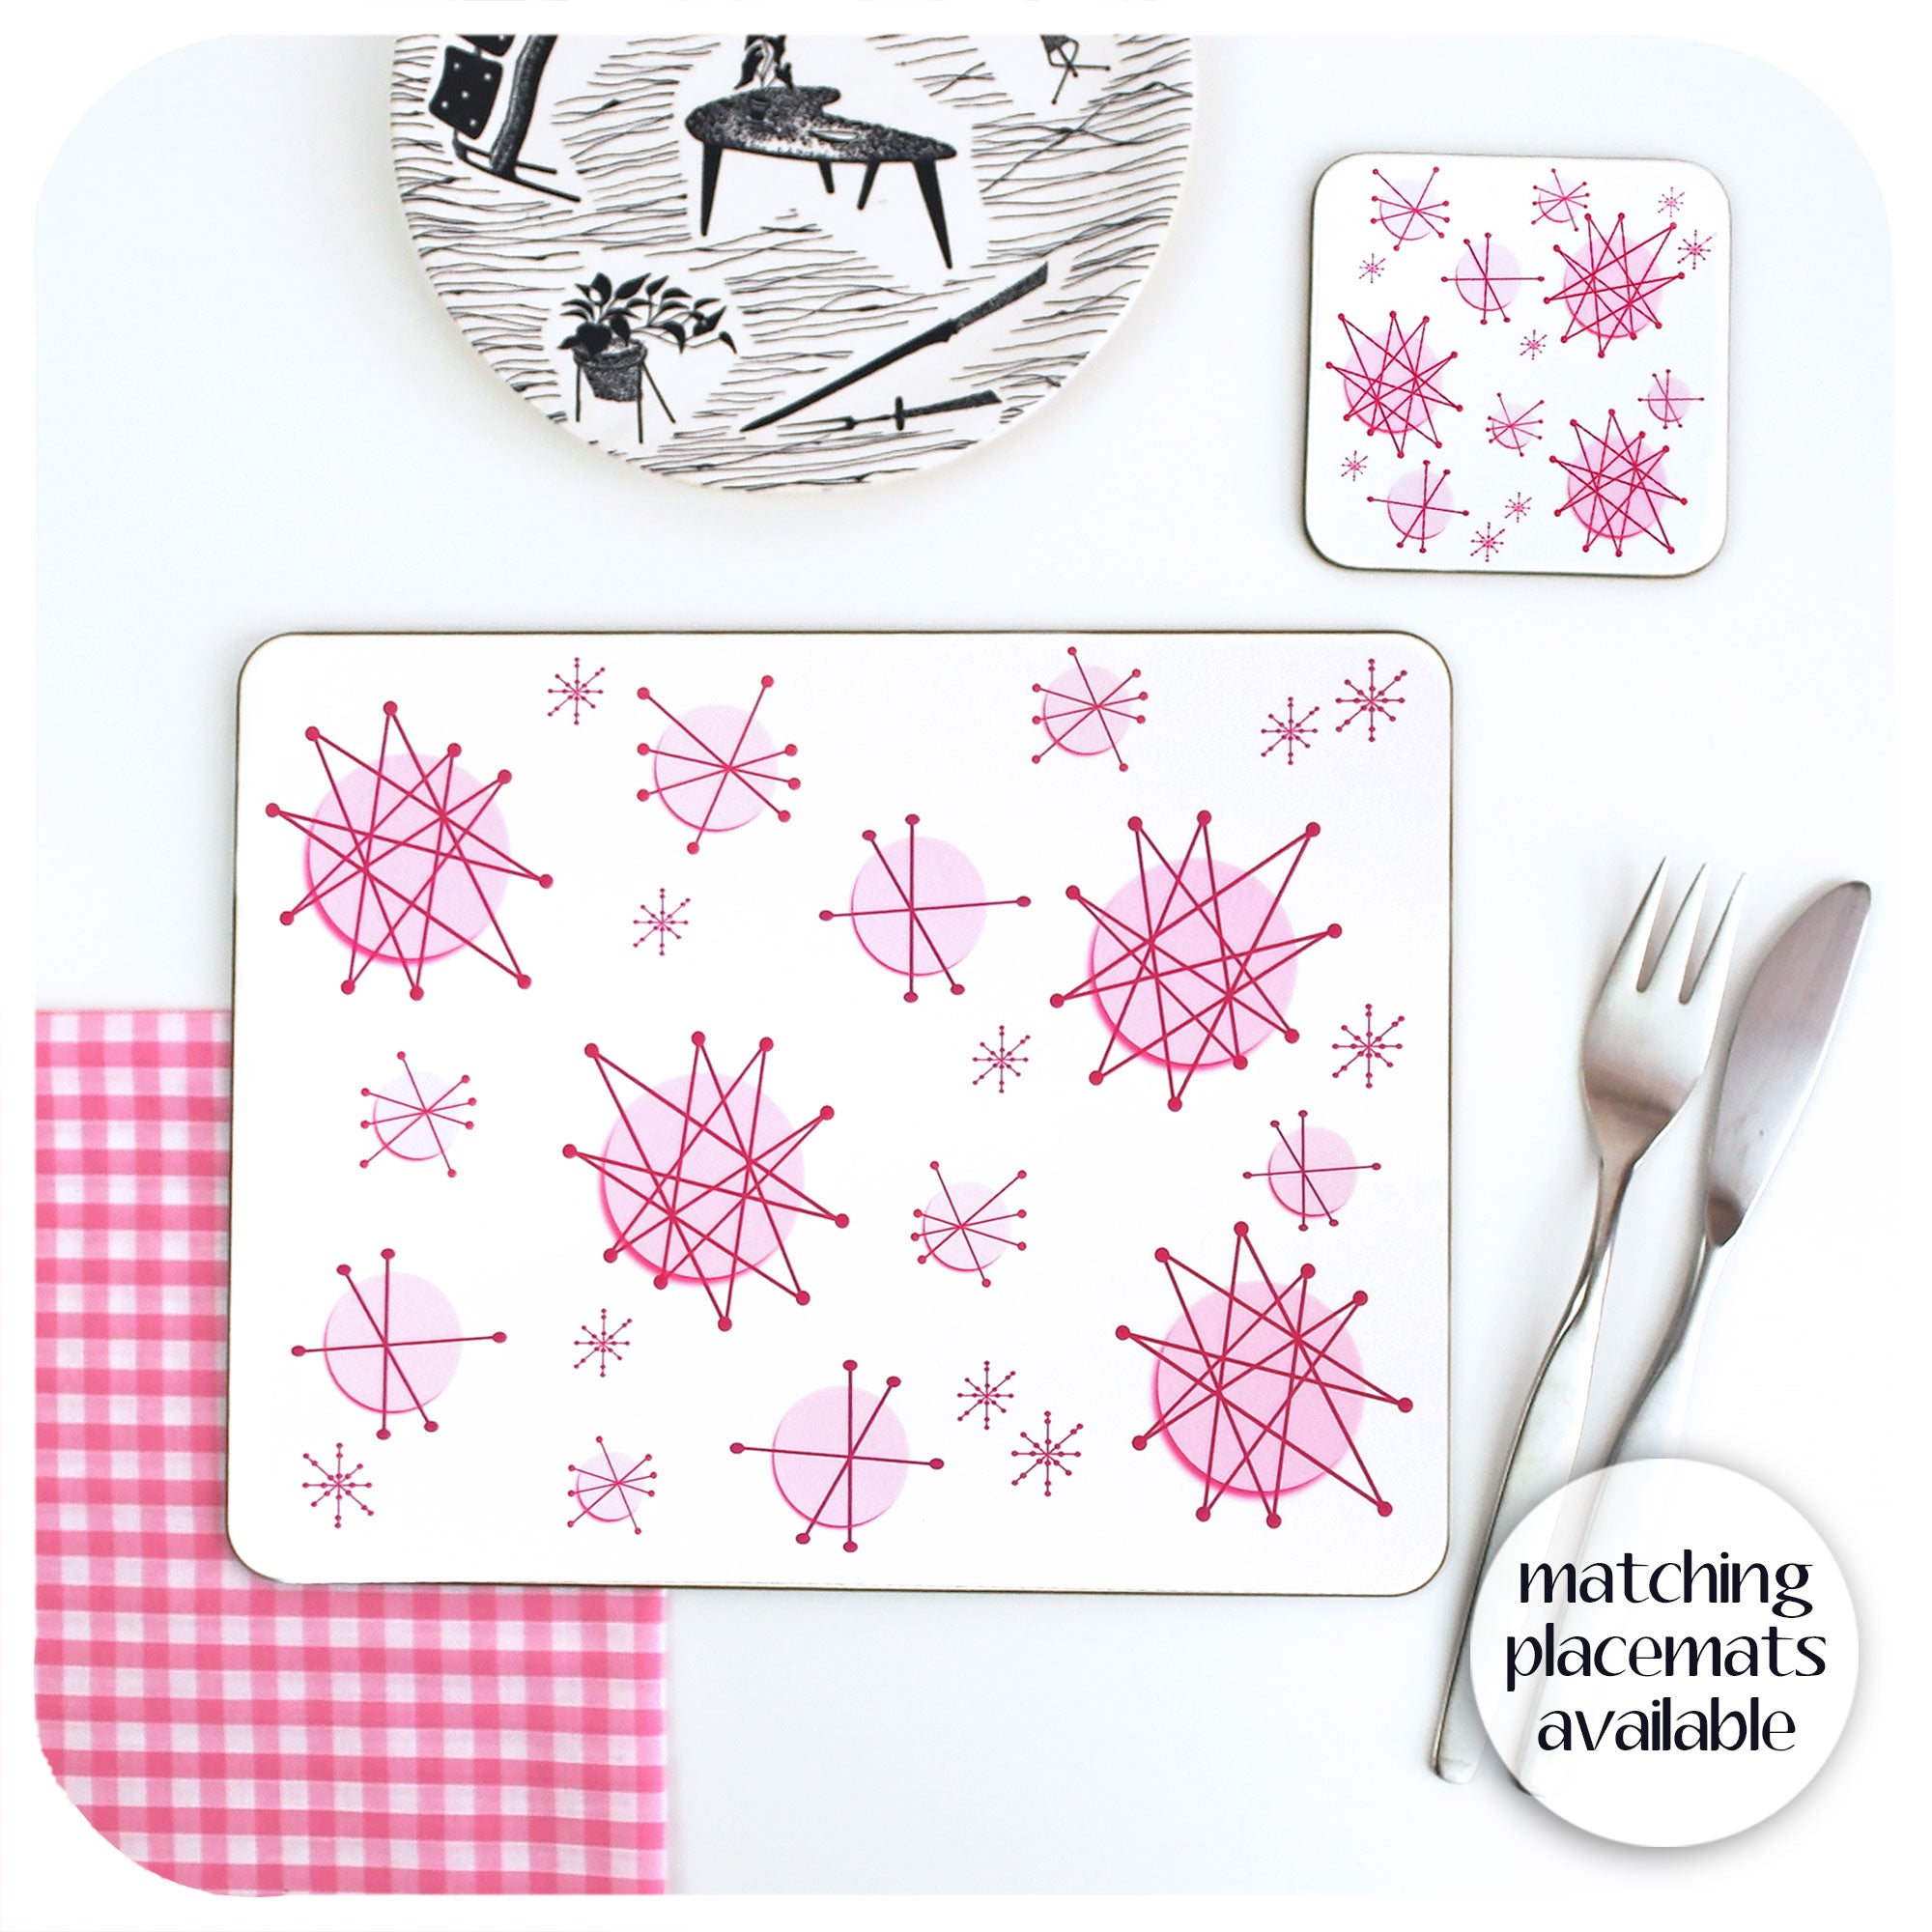 Pink Atomic Starburst Placemats to match coasters available | The Inkabilly Emporium